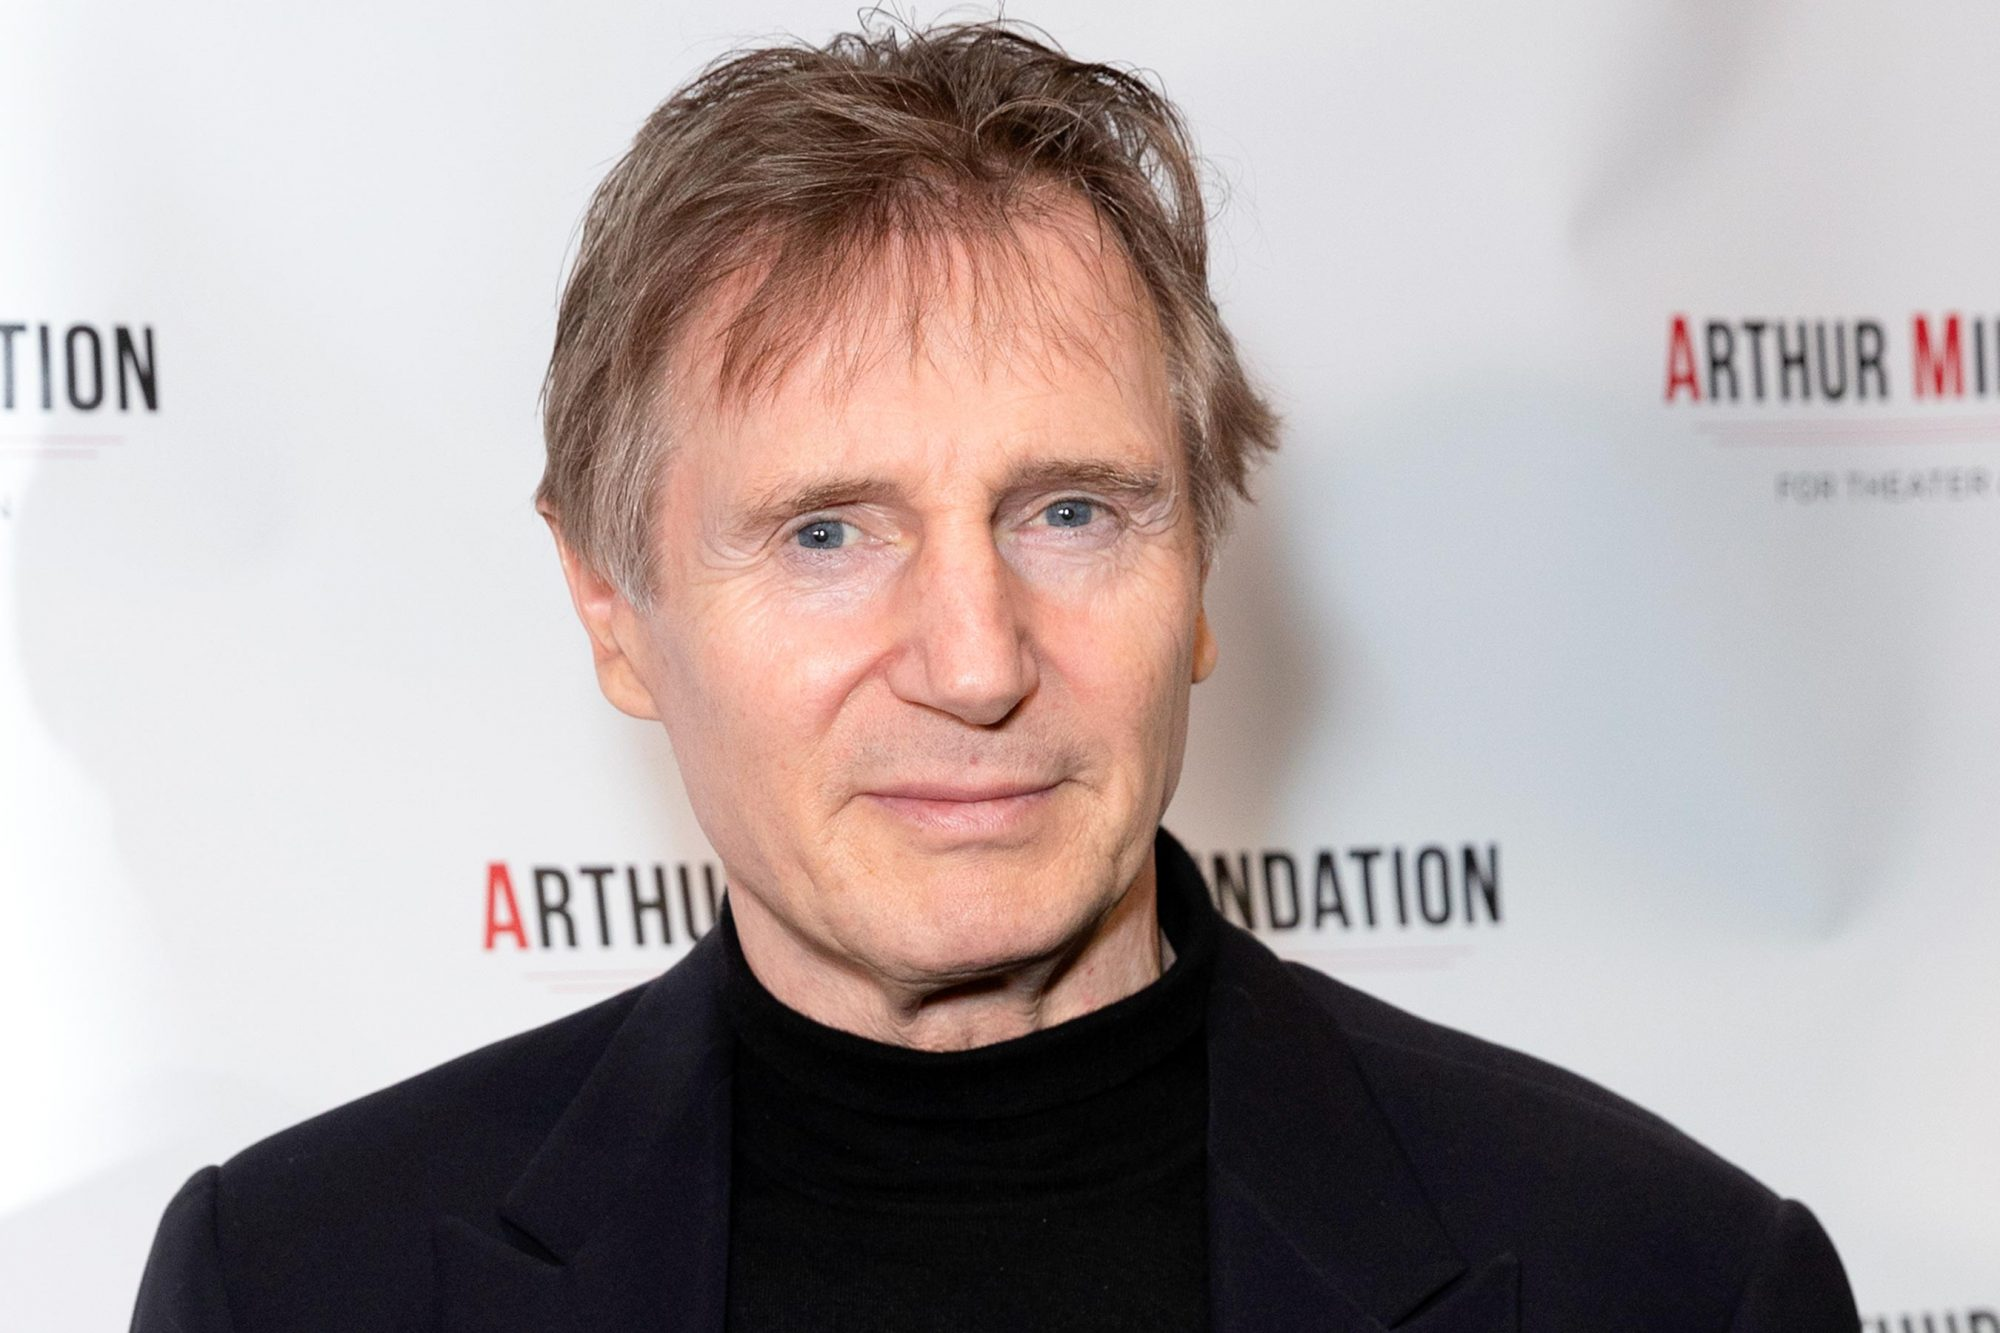 Liam Neeson attends 2018 Arthur Miller Foundation Honors